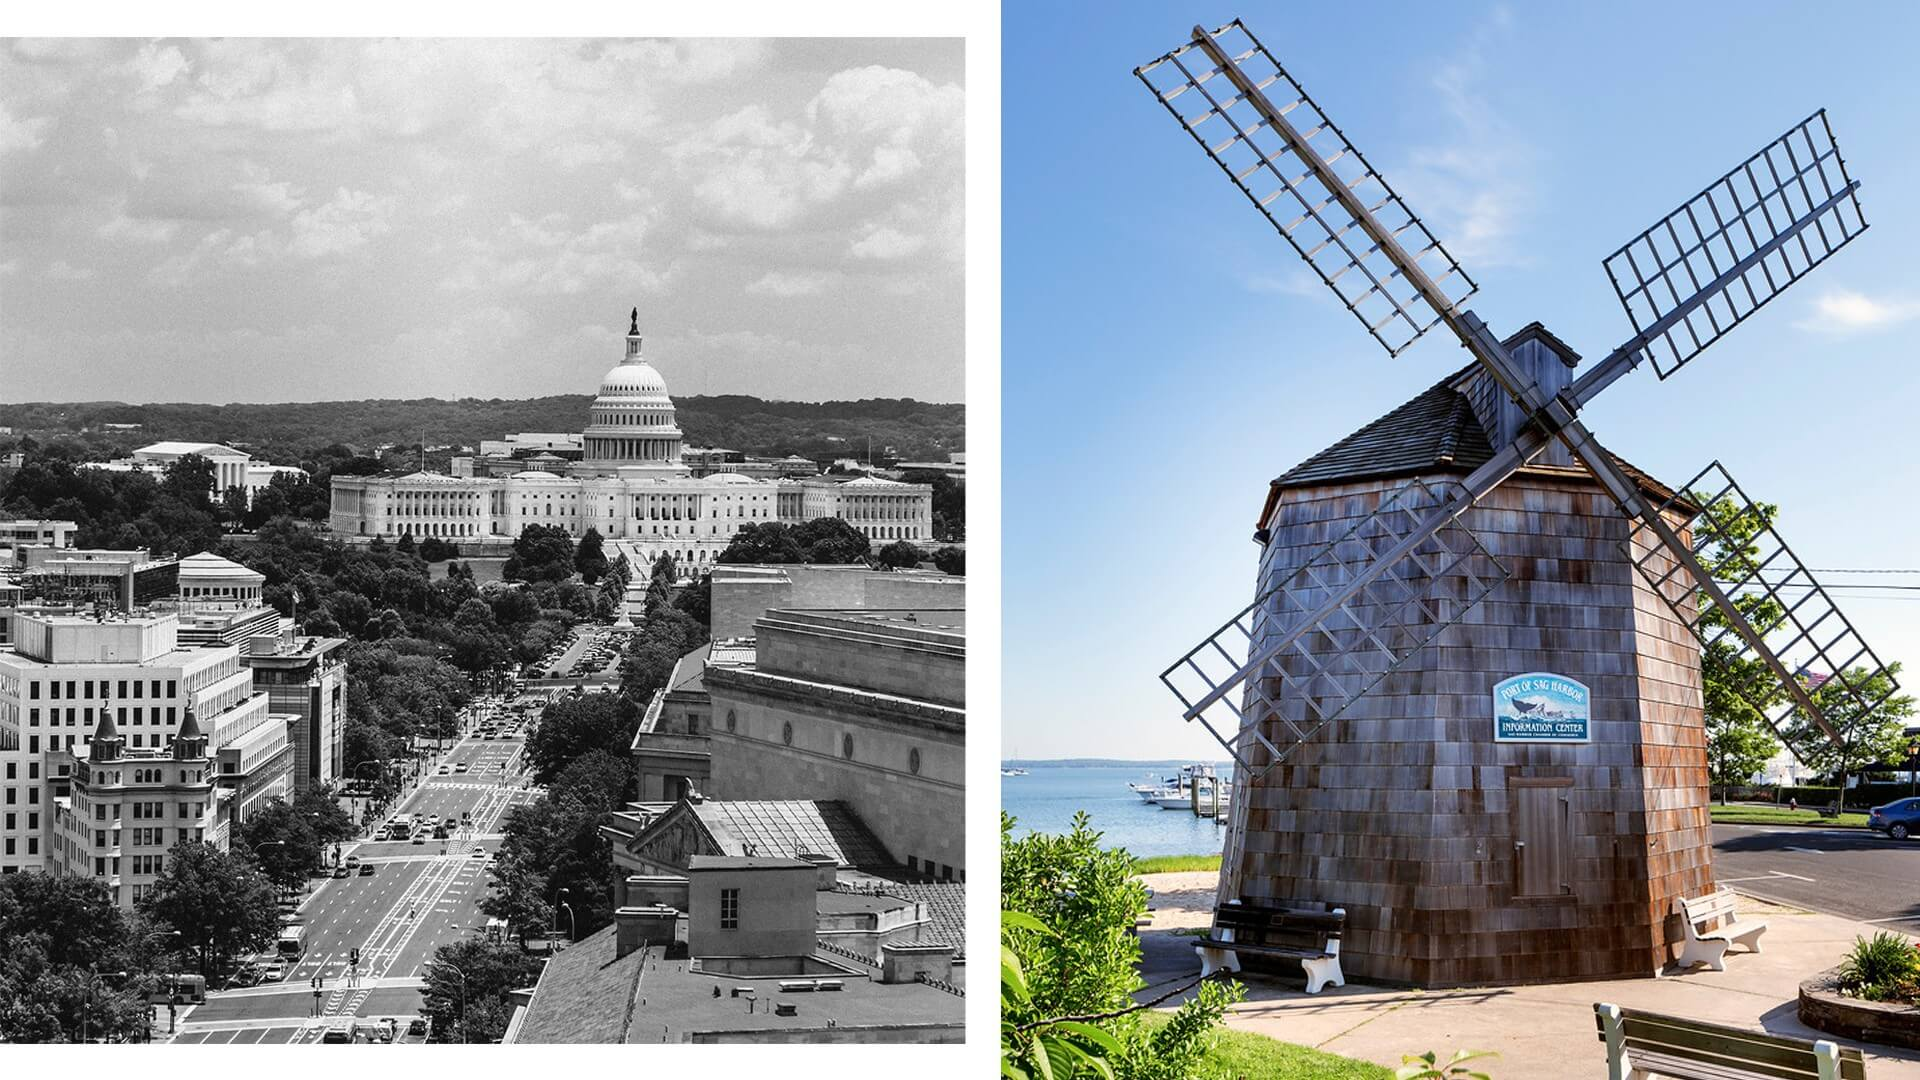 collage of the capitol building in Washington DC with the Sag Harbor windmill